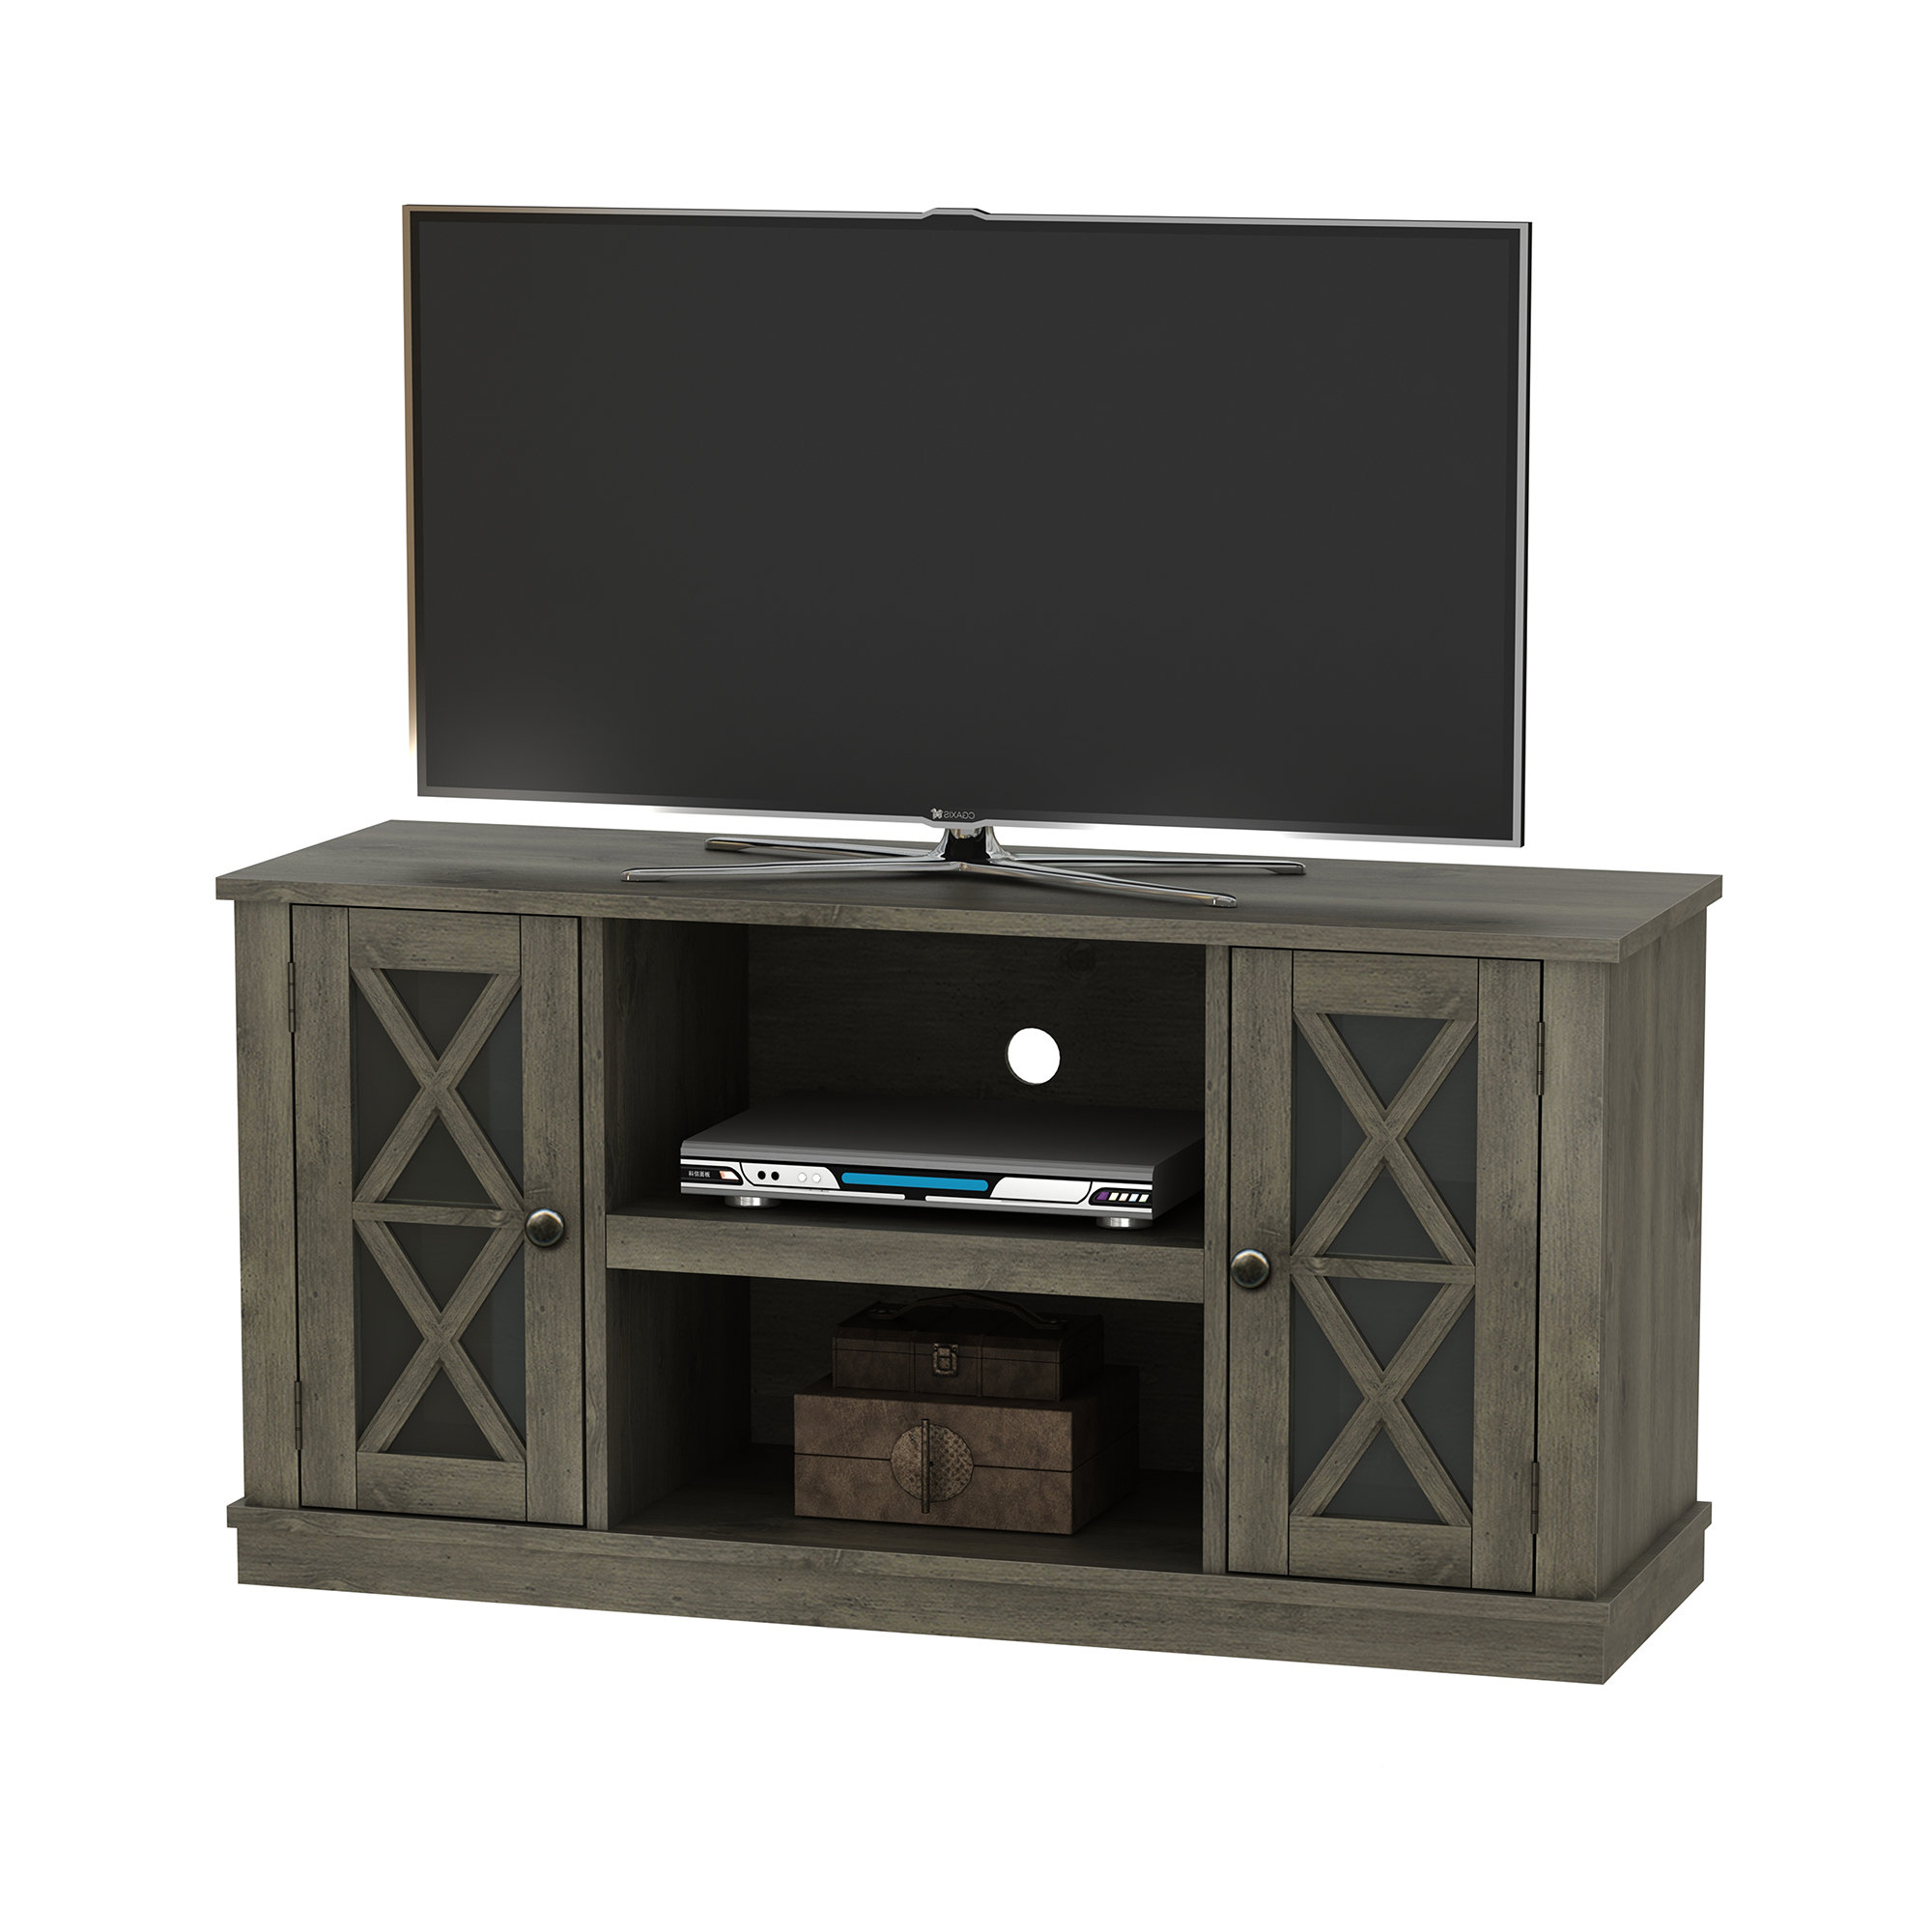 Grey Tv Stands (View 3 of 20)